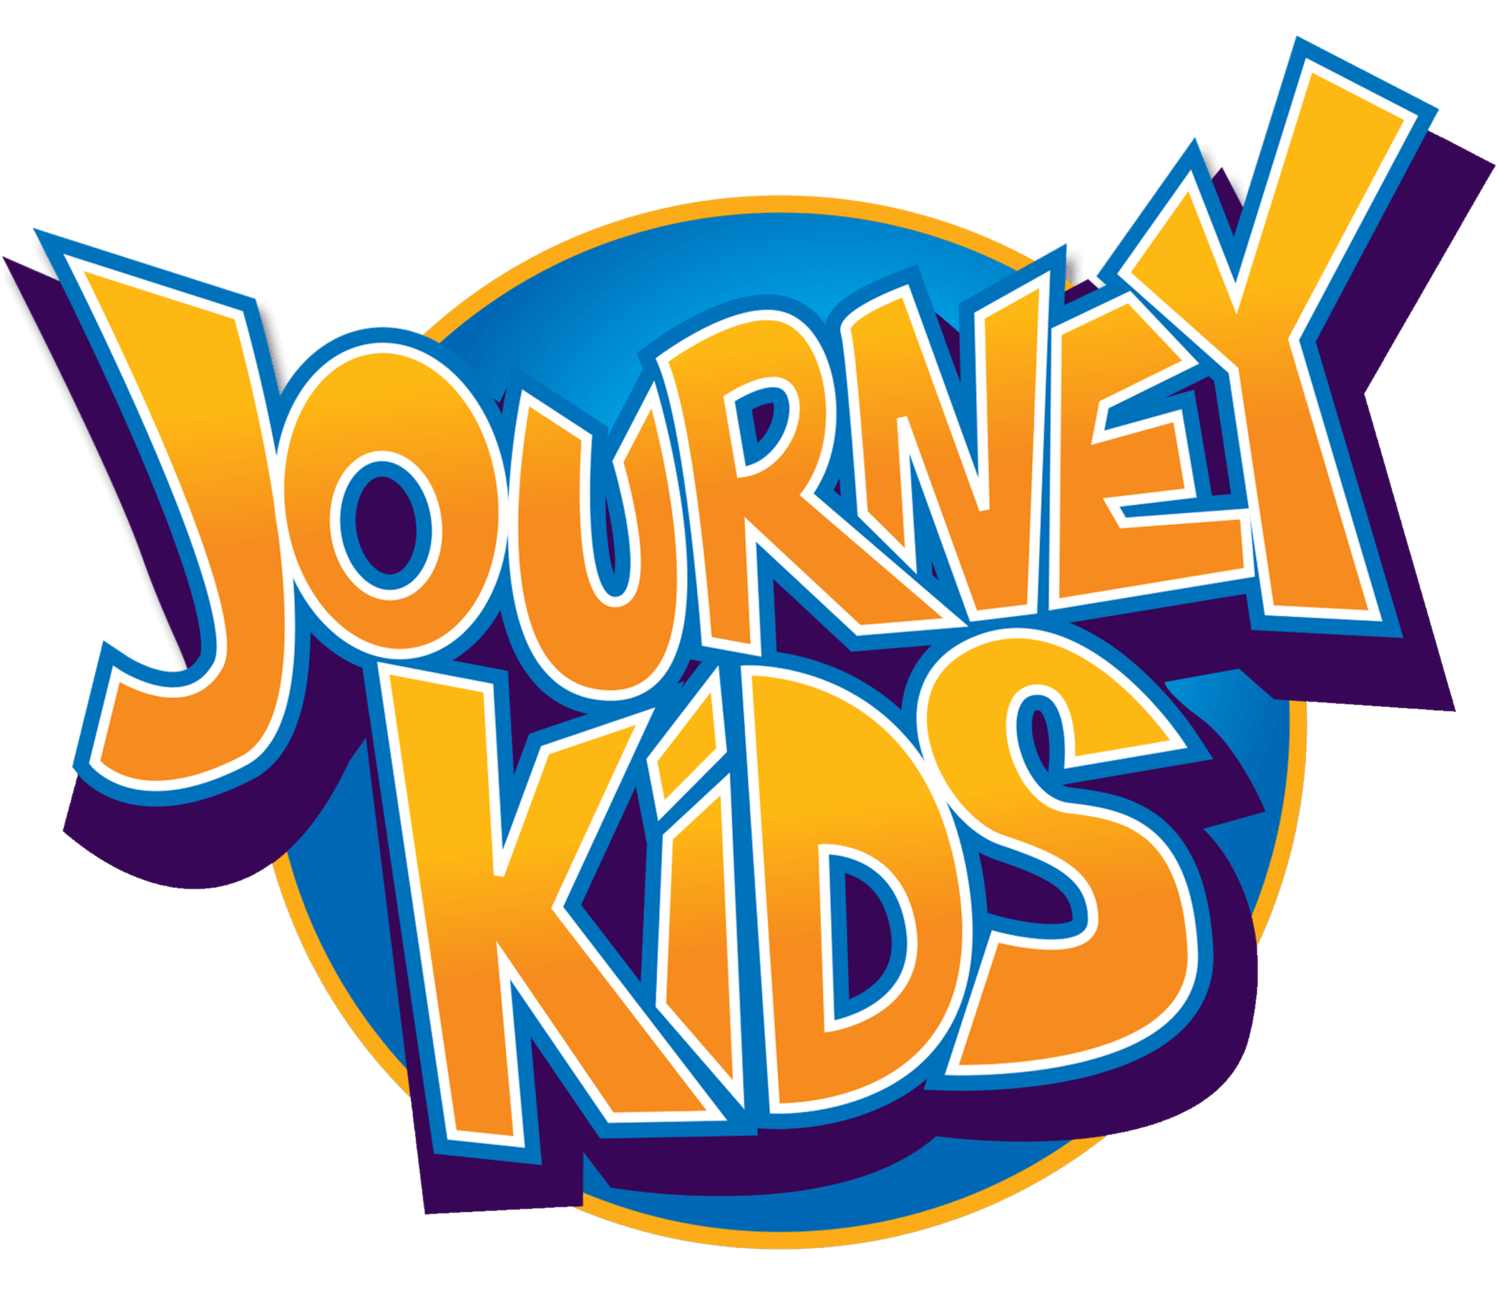 Kids care about fashion, so make sure you send them to school on the right foot with these awesome shoes from Journeys Kidz. With this deal, you can get fancy footwear from big brands like Birkenstock, Converse and Sperry.